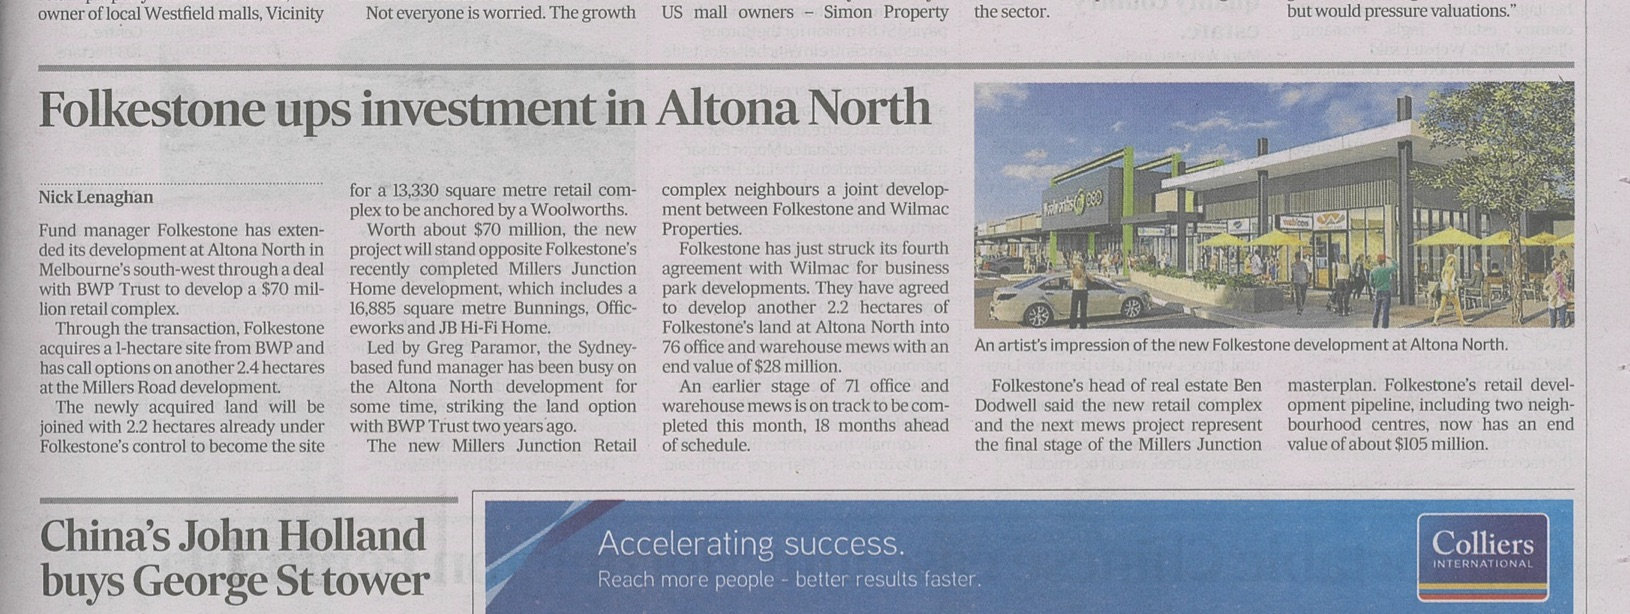 AFR Folkestone Announcement